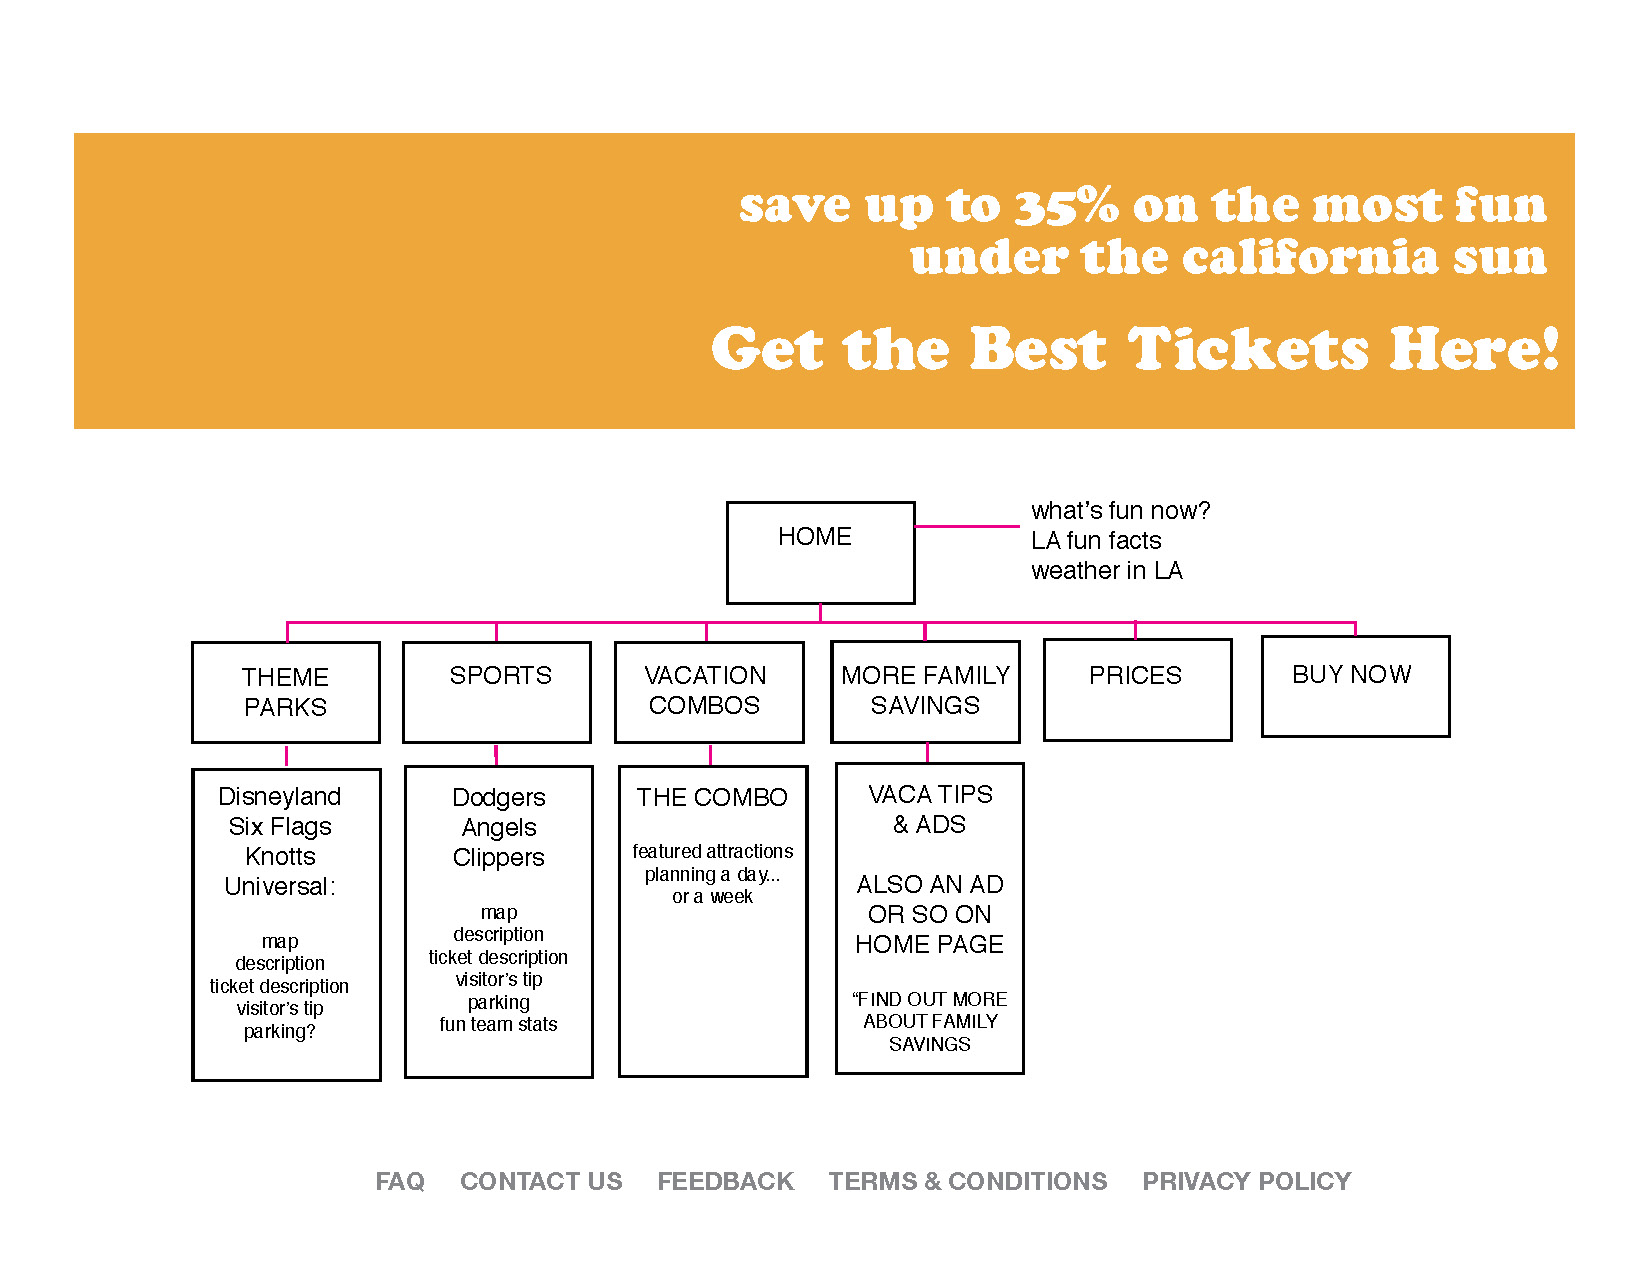 Siimple Best Tickets Here Sitemap